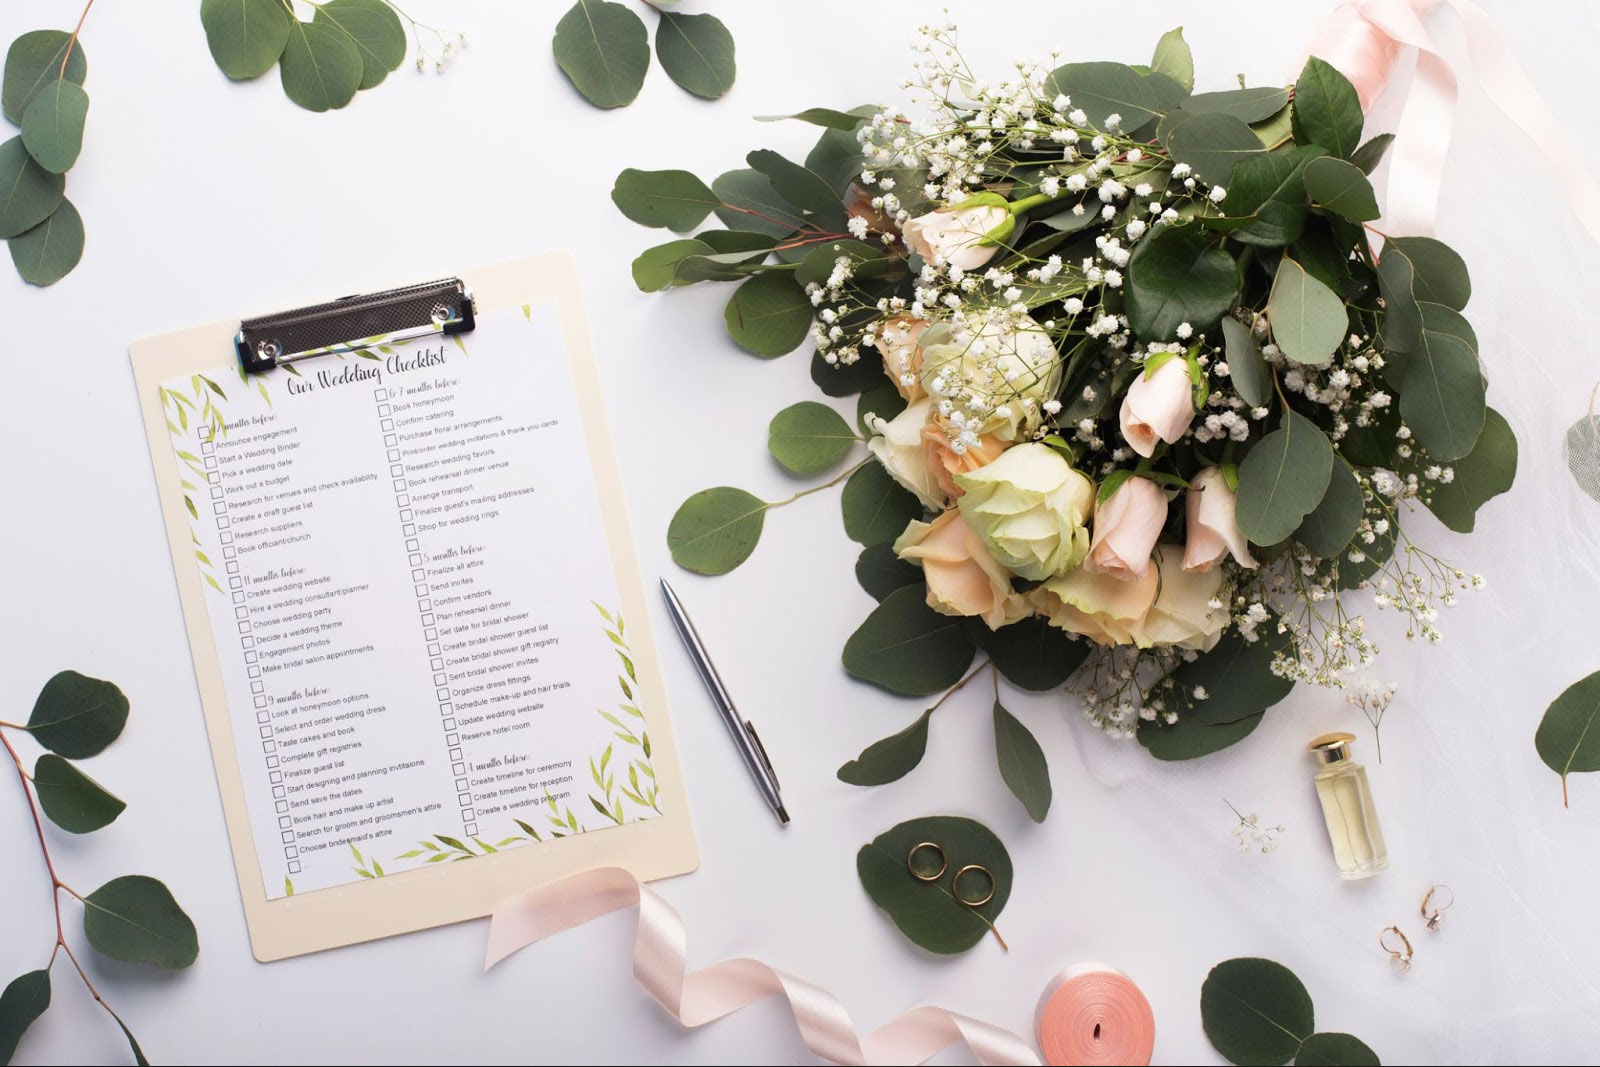 wedding planning check list and flowers